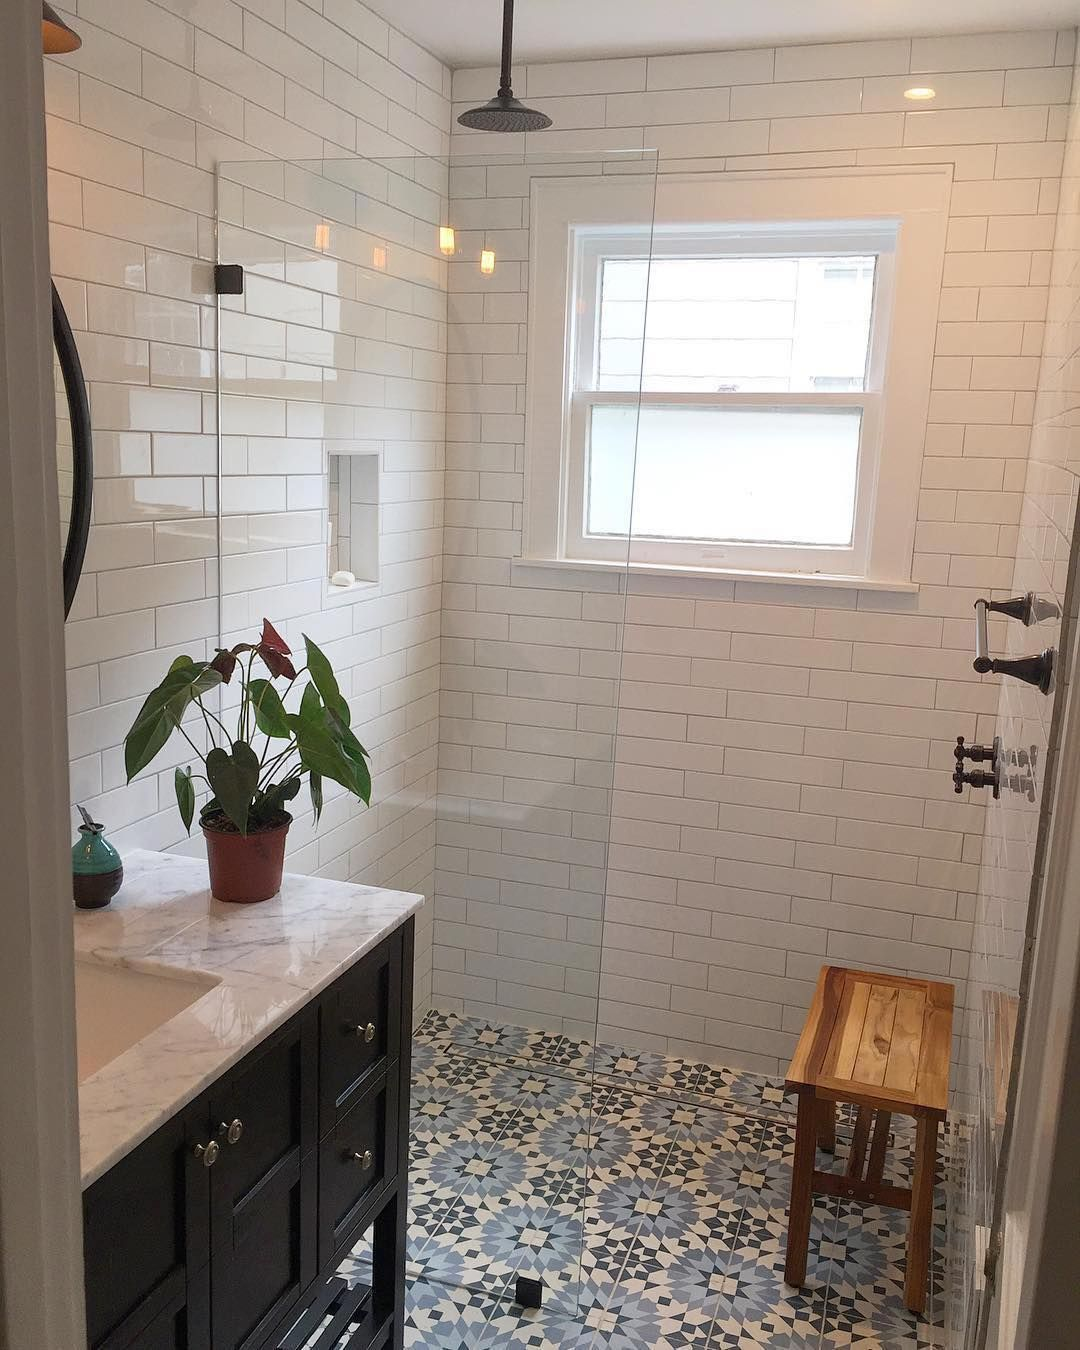 Clay Imports Austin On Instagram Sharing This Project By Camcrow Because Bathroomgoals Our Cement Tile Small Master Bath Sustainable Flooring